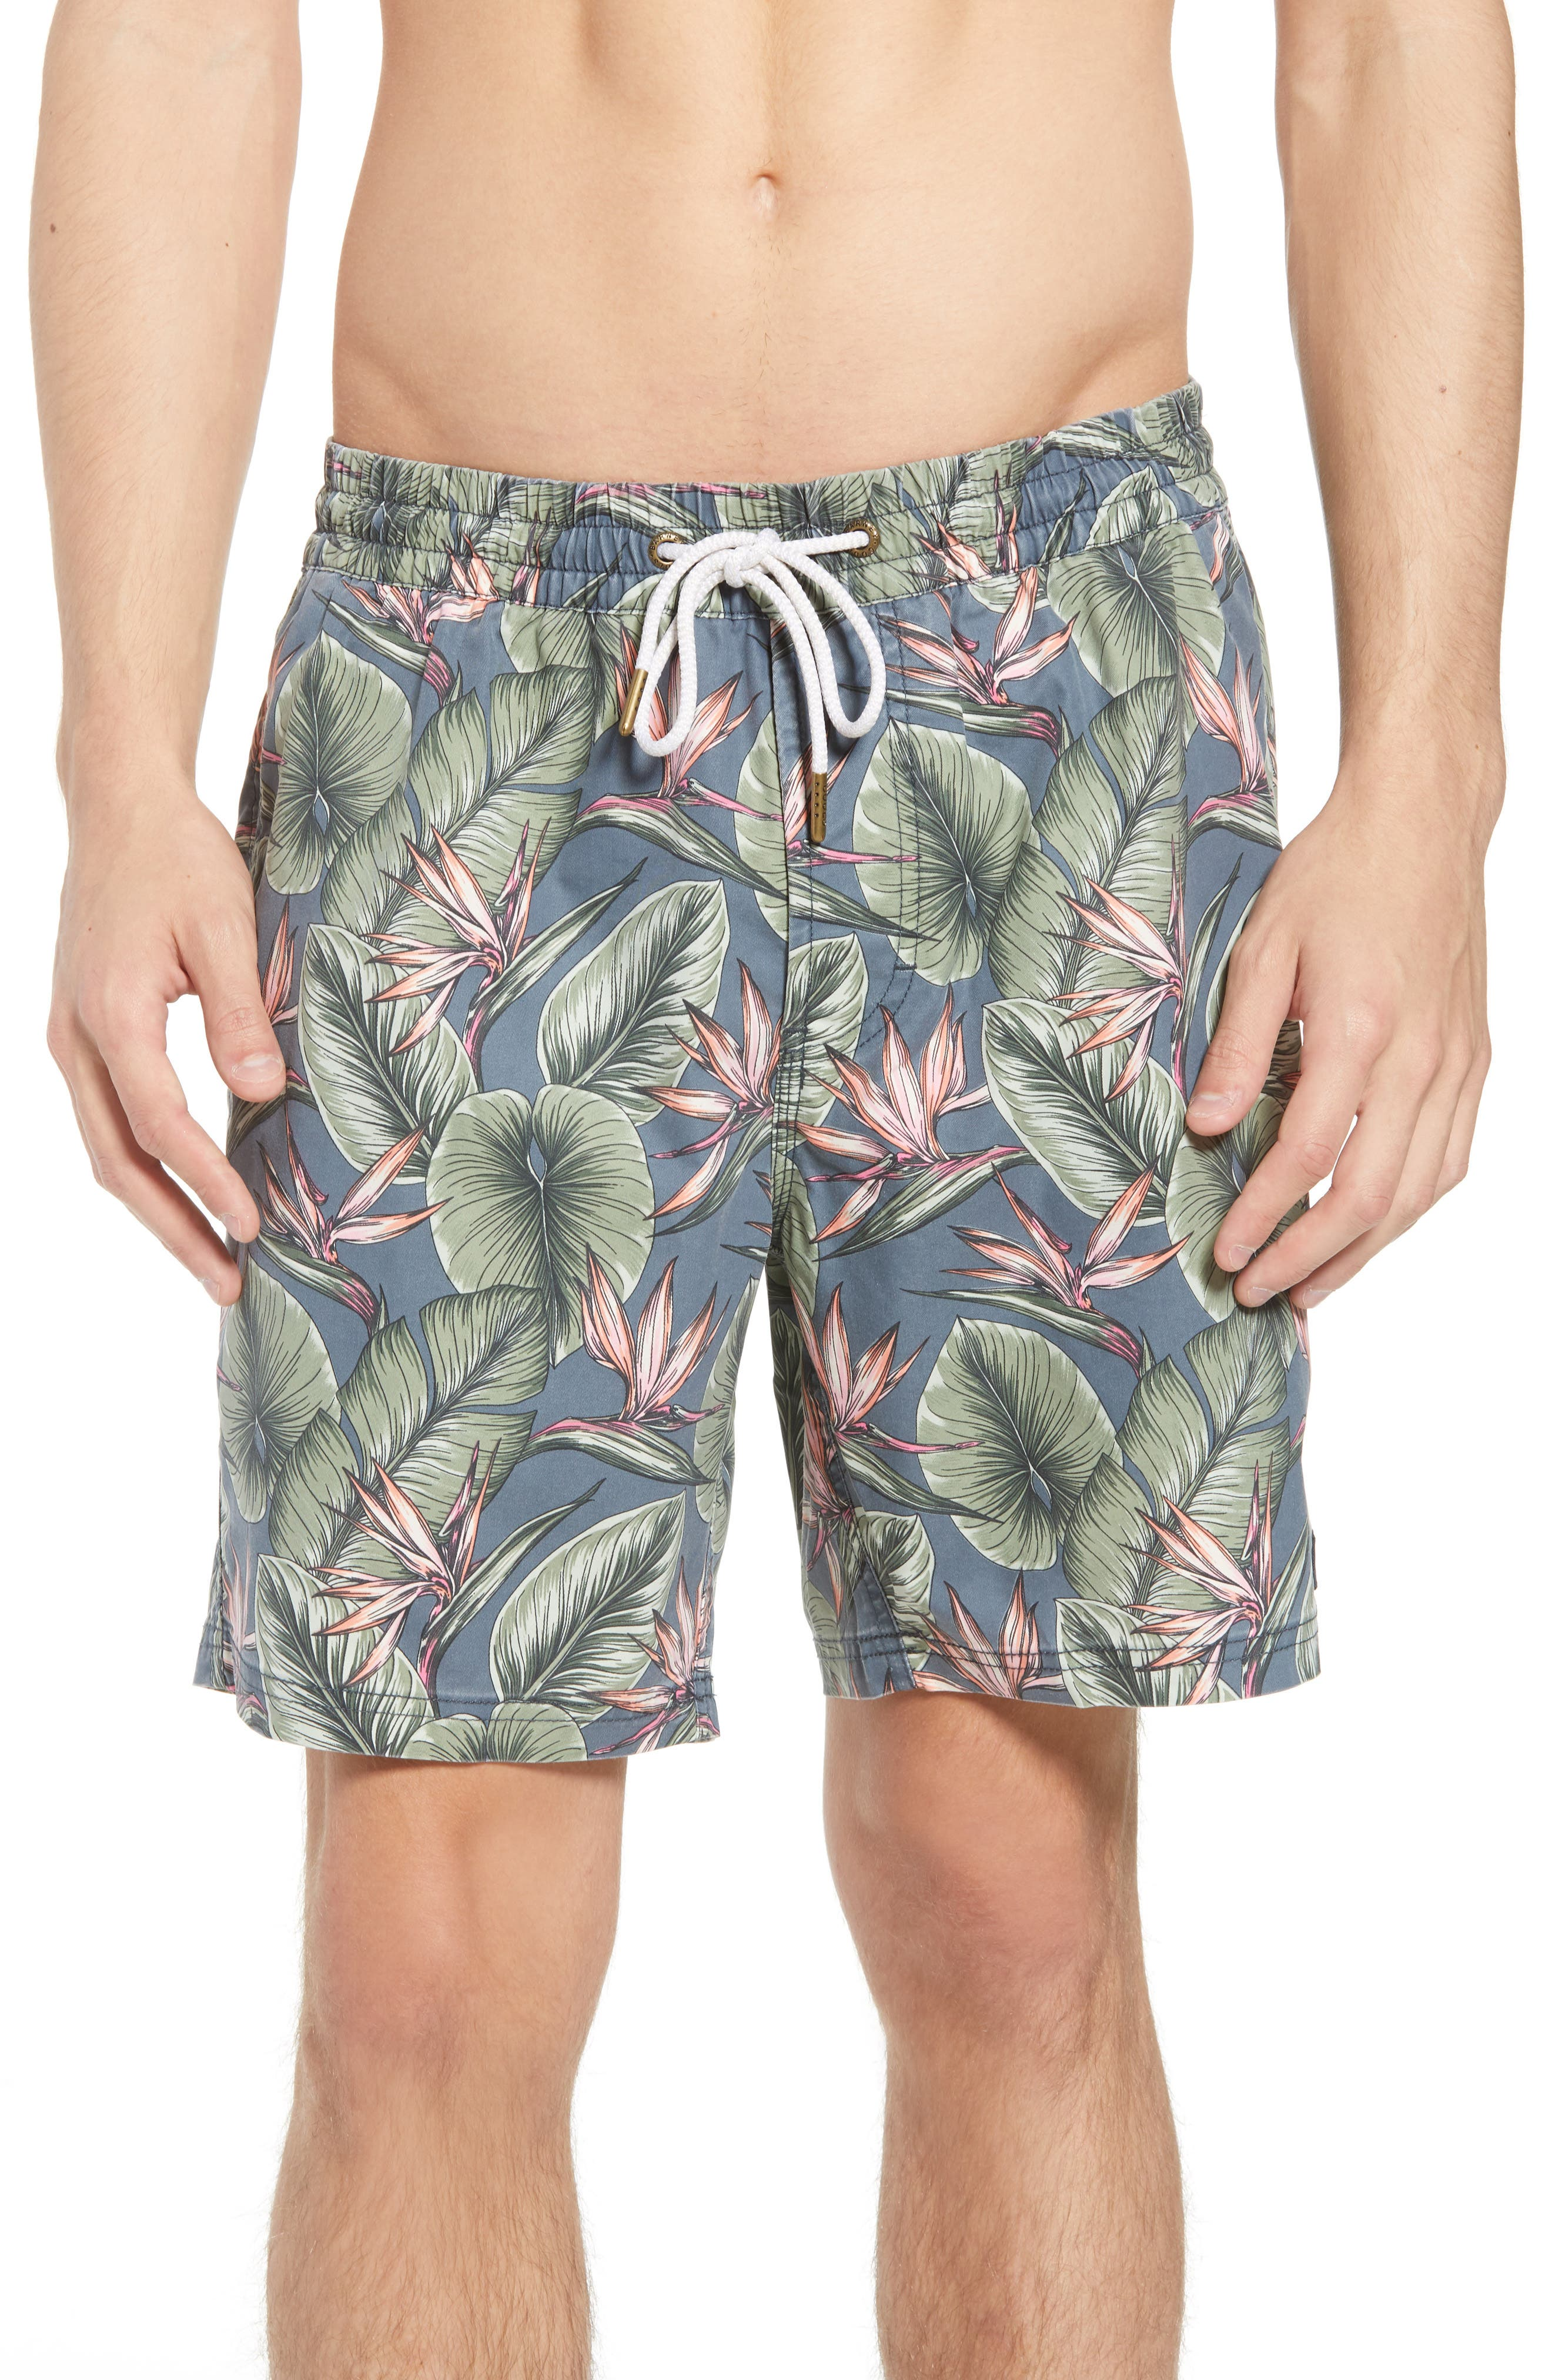 Barney Cools Amphibious Swim Trunks